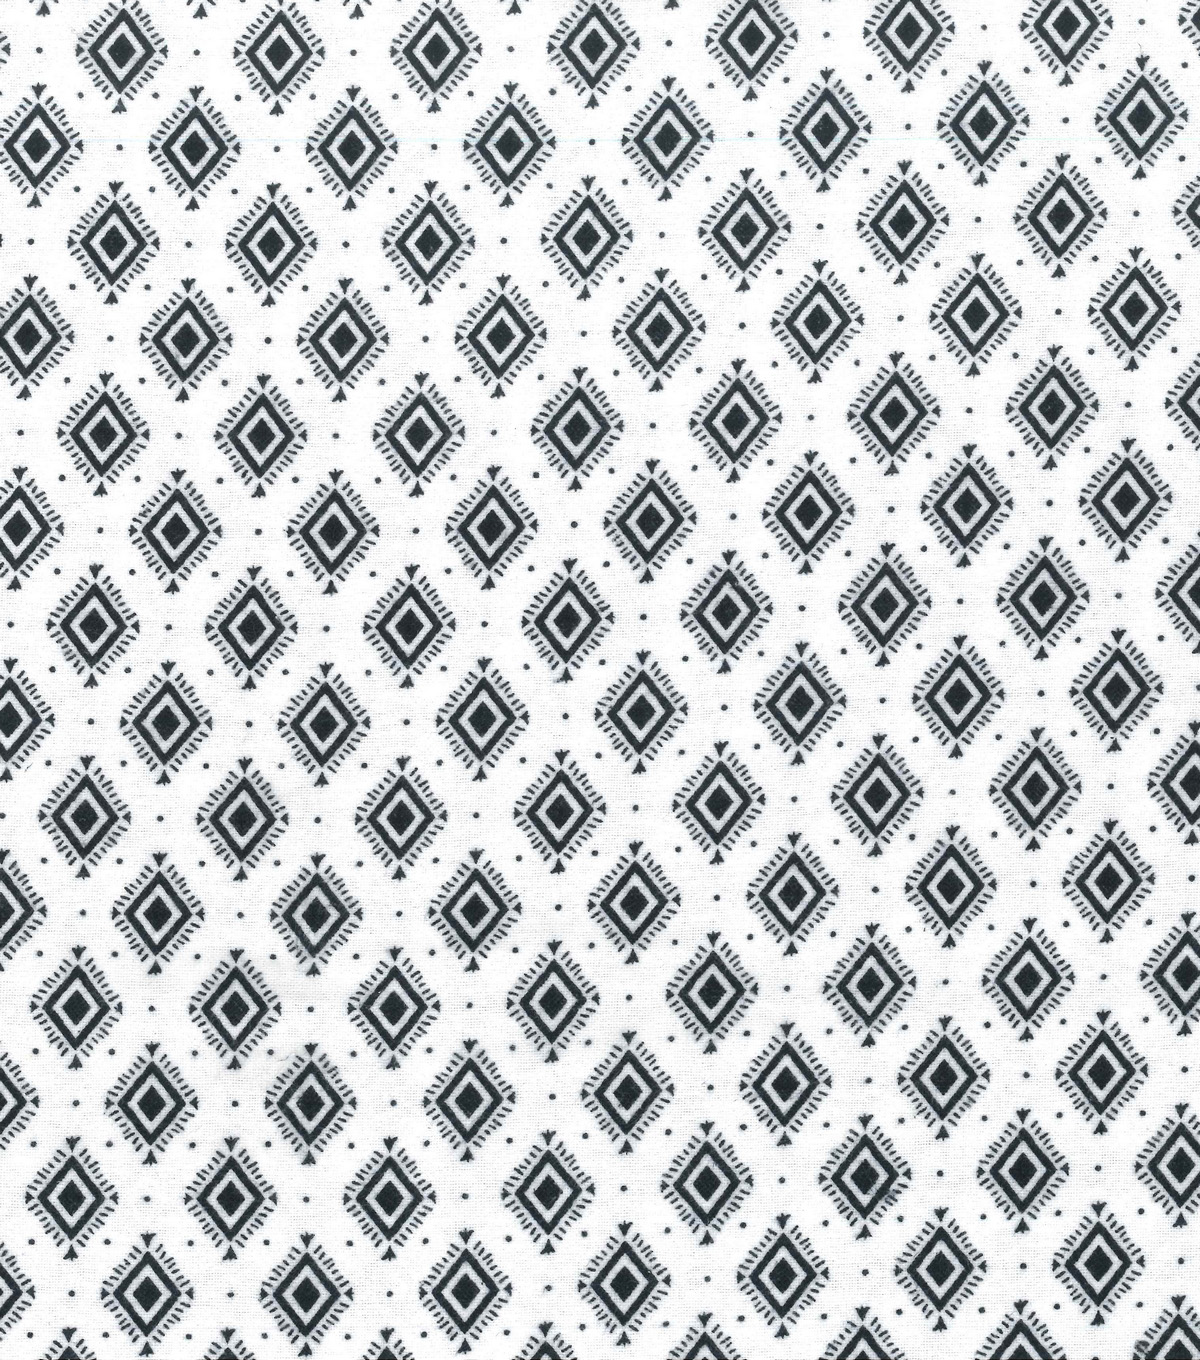 Wide Flannel Fabric -Black White Diamond